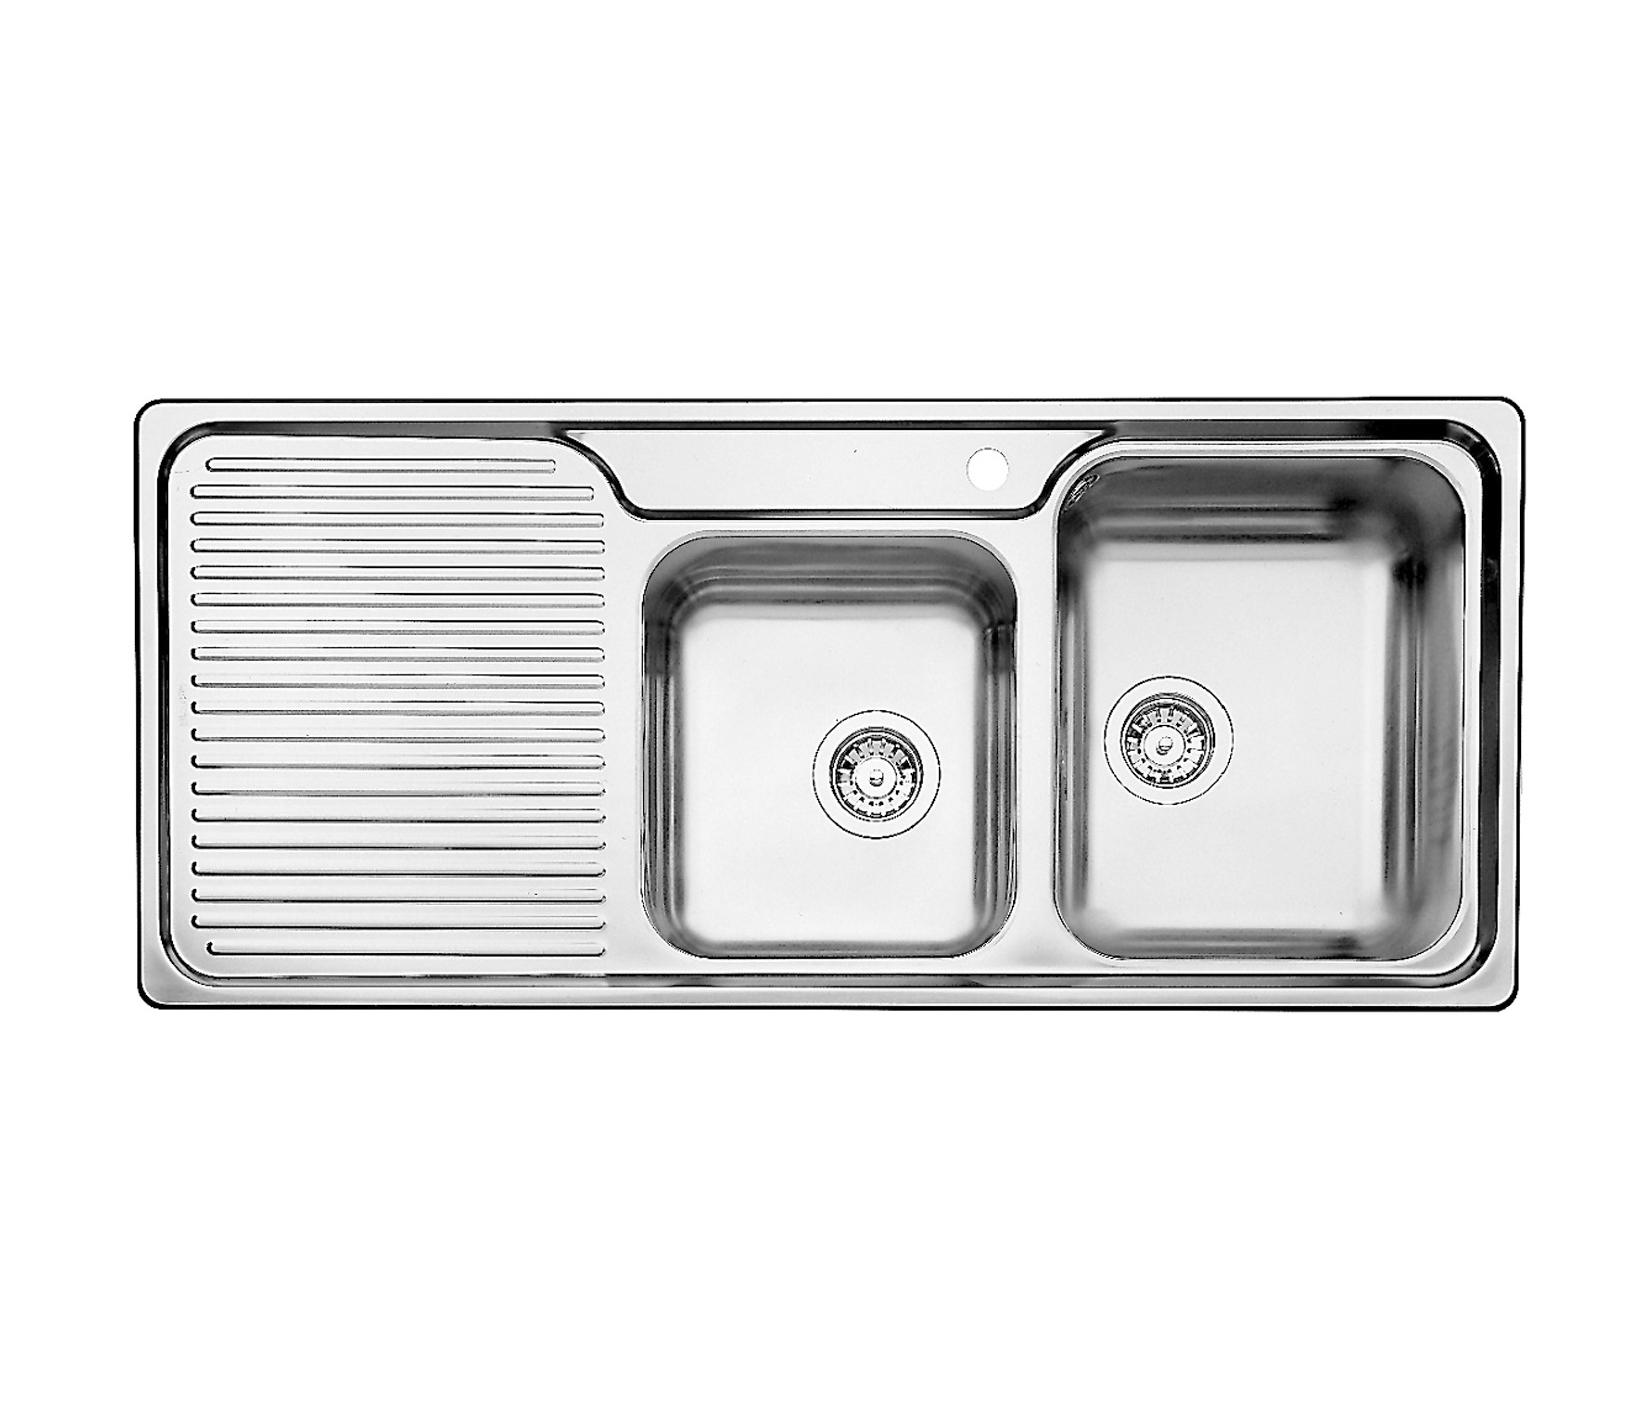 classic kitchen sink 4 hole faucet blanco 8 s silgranit besto blog